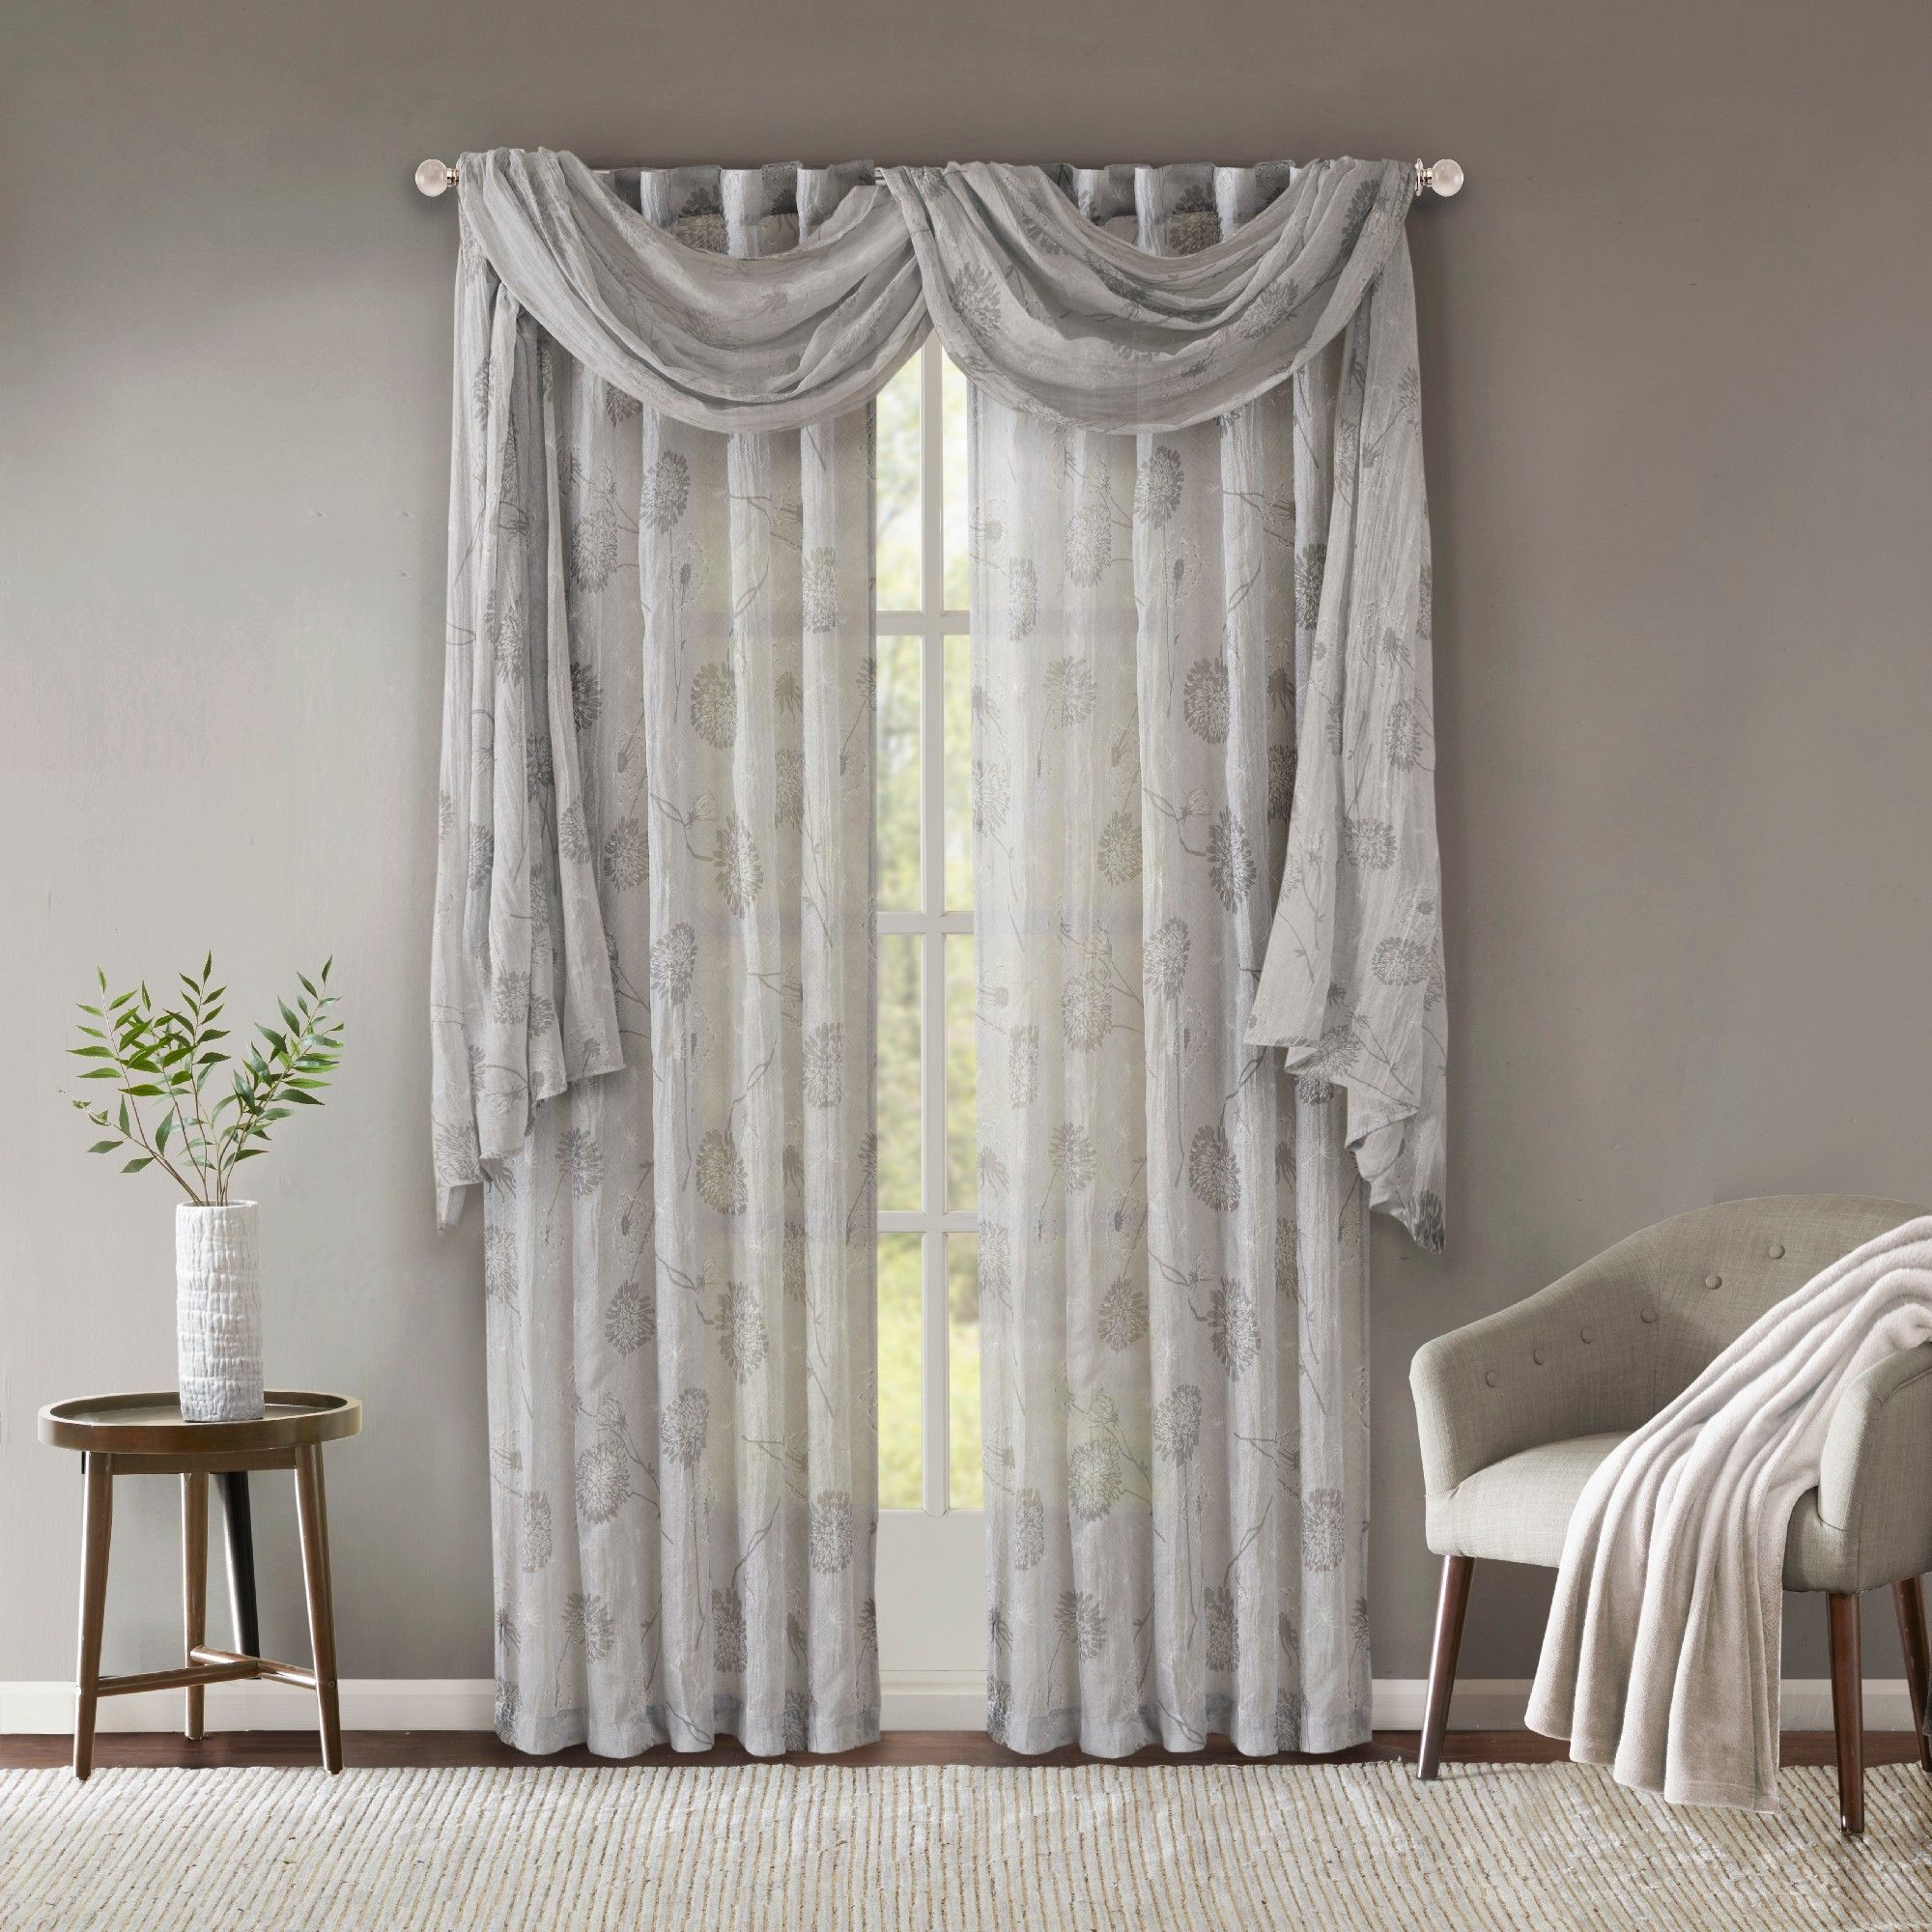 Aer Printed Crushed Scarf Sheer Gray 42x144 Curtains Dining